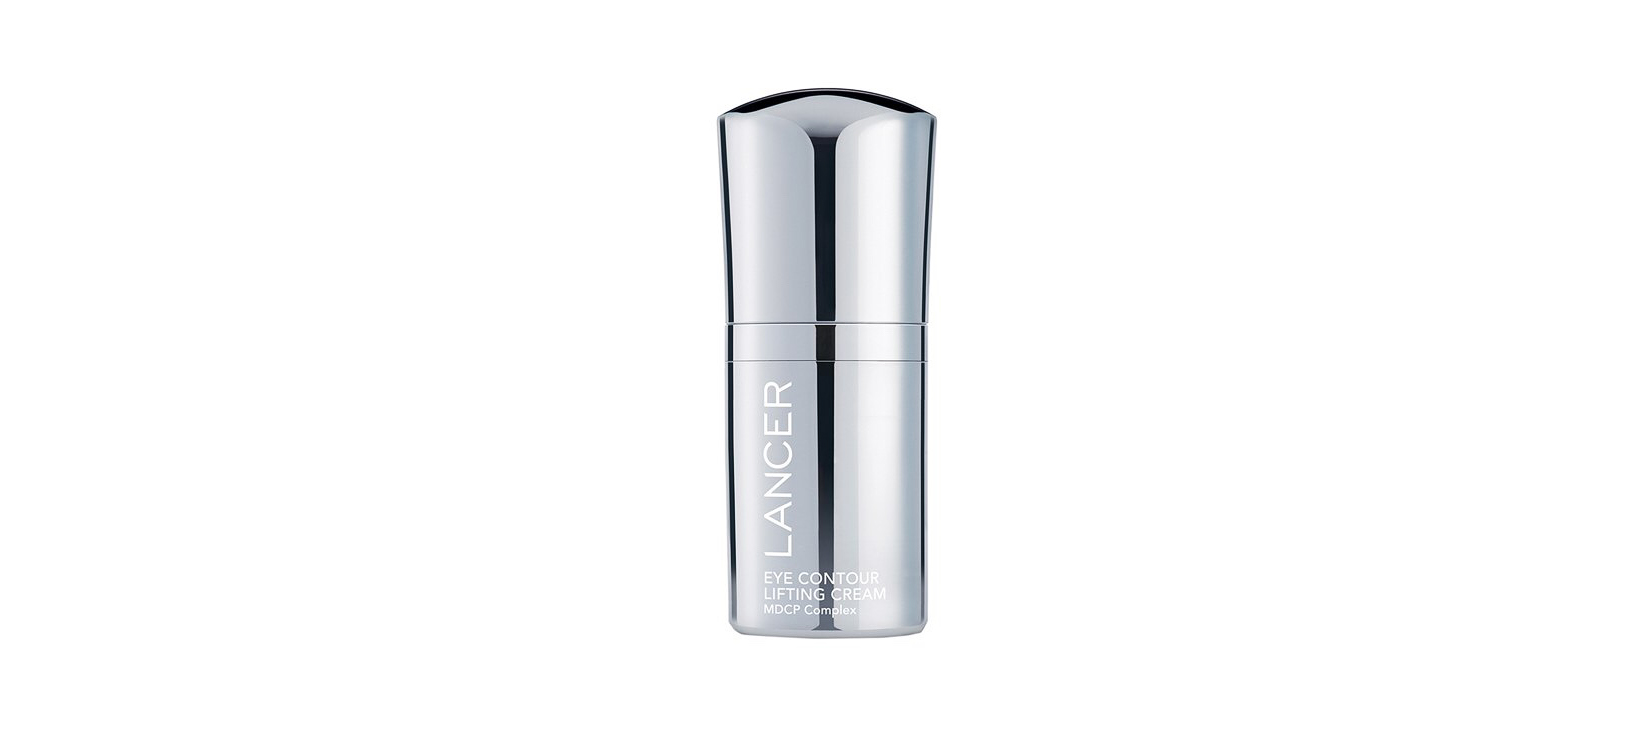 Lancer Skincare Eye Contour Lifting Cream with Diamond Powder